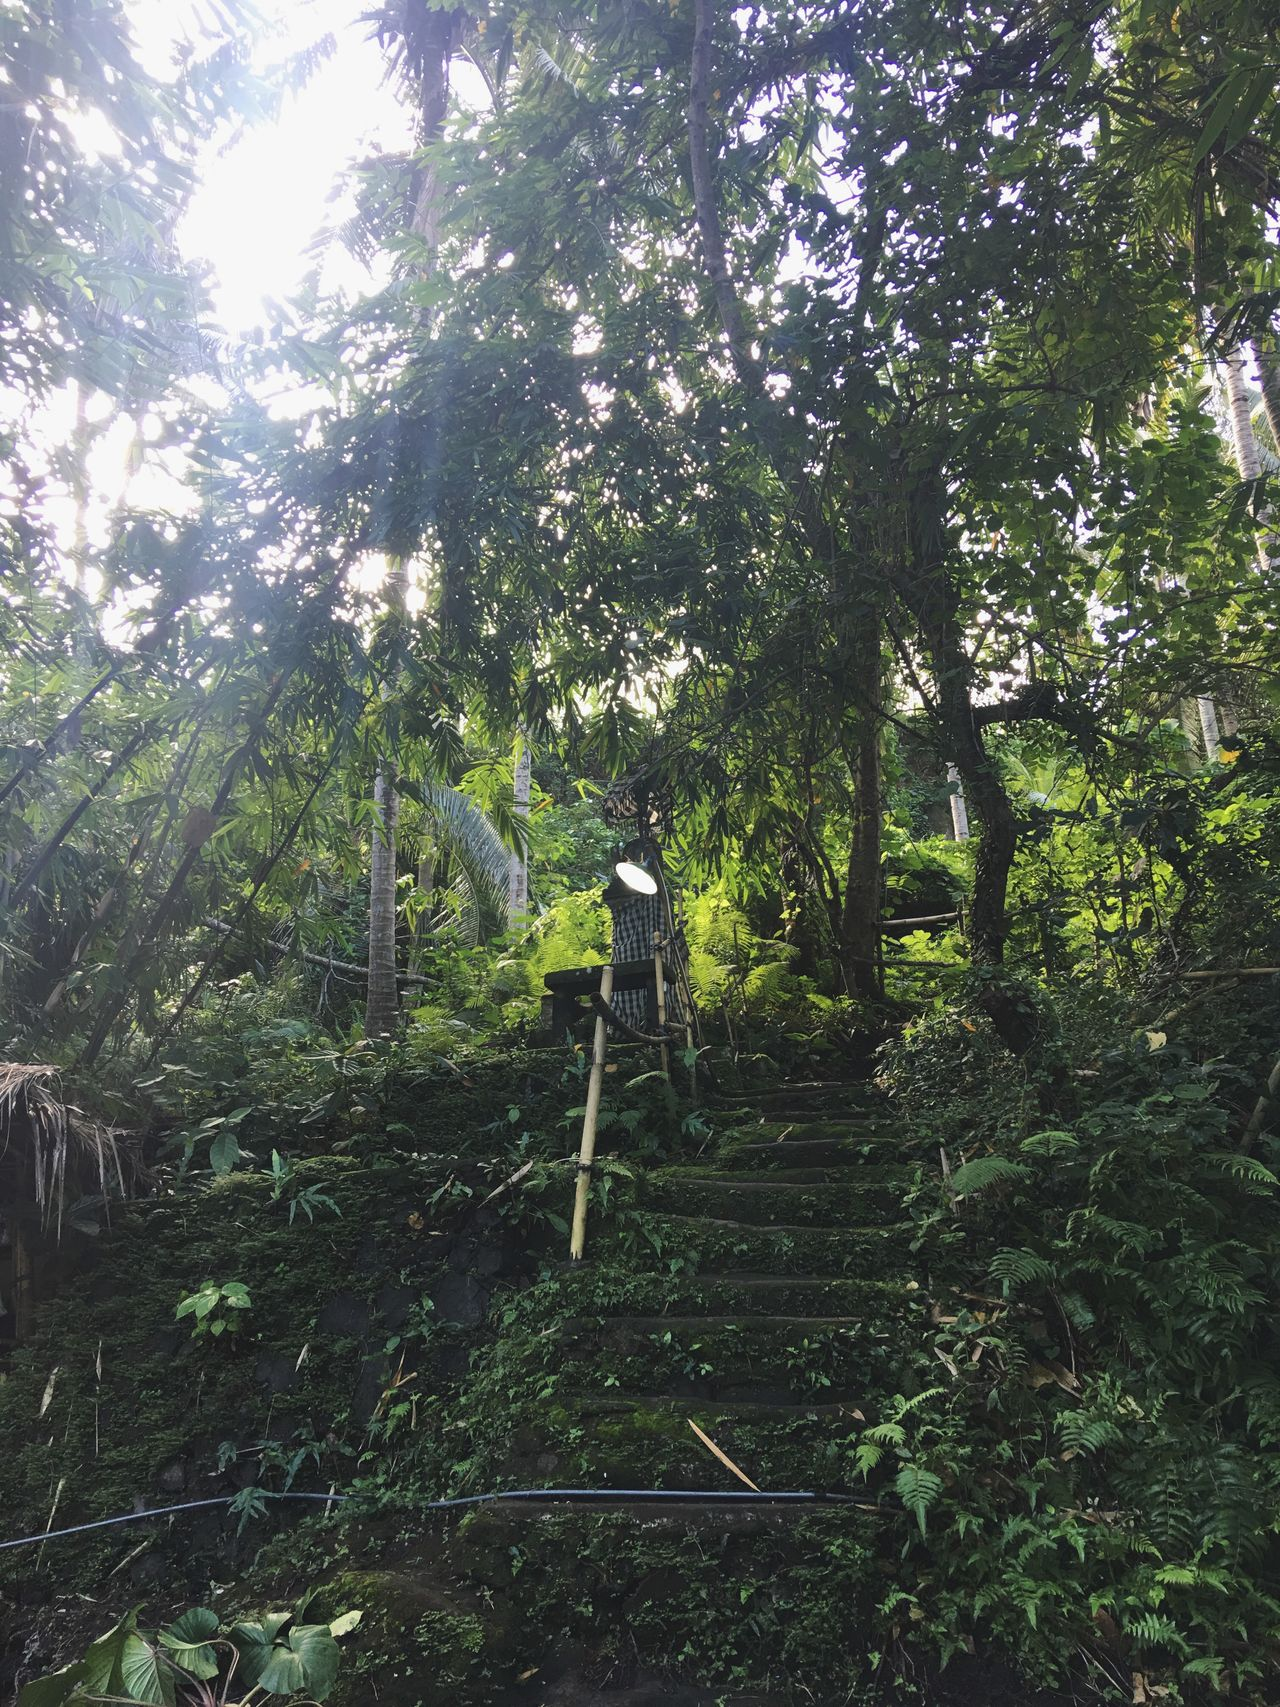 Bali Ubud Nature Forest Hike Hiking Path Pathway Exploring Leisure Activity Outdoors Lifestyles Sunlight Direction Photooftheday Stairs Tree Trees